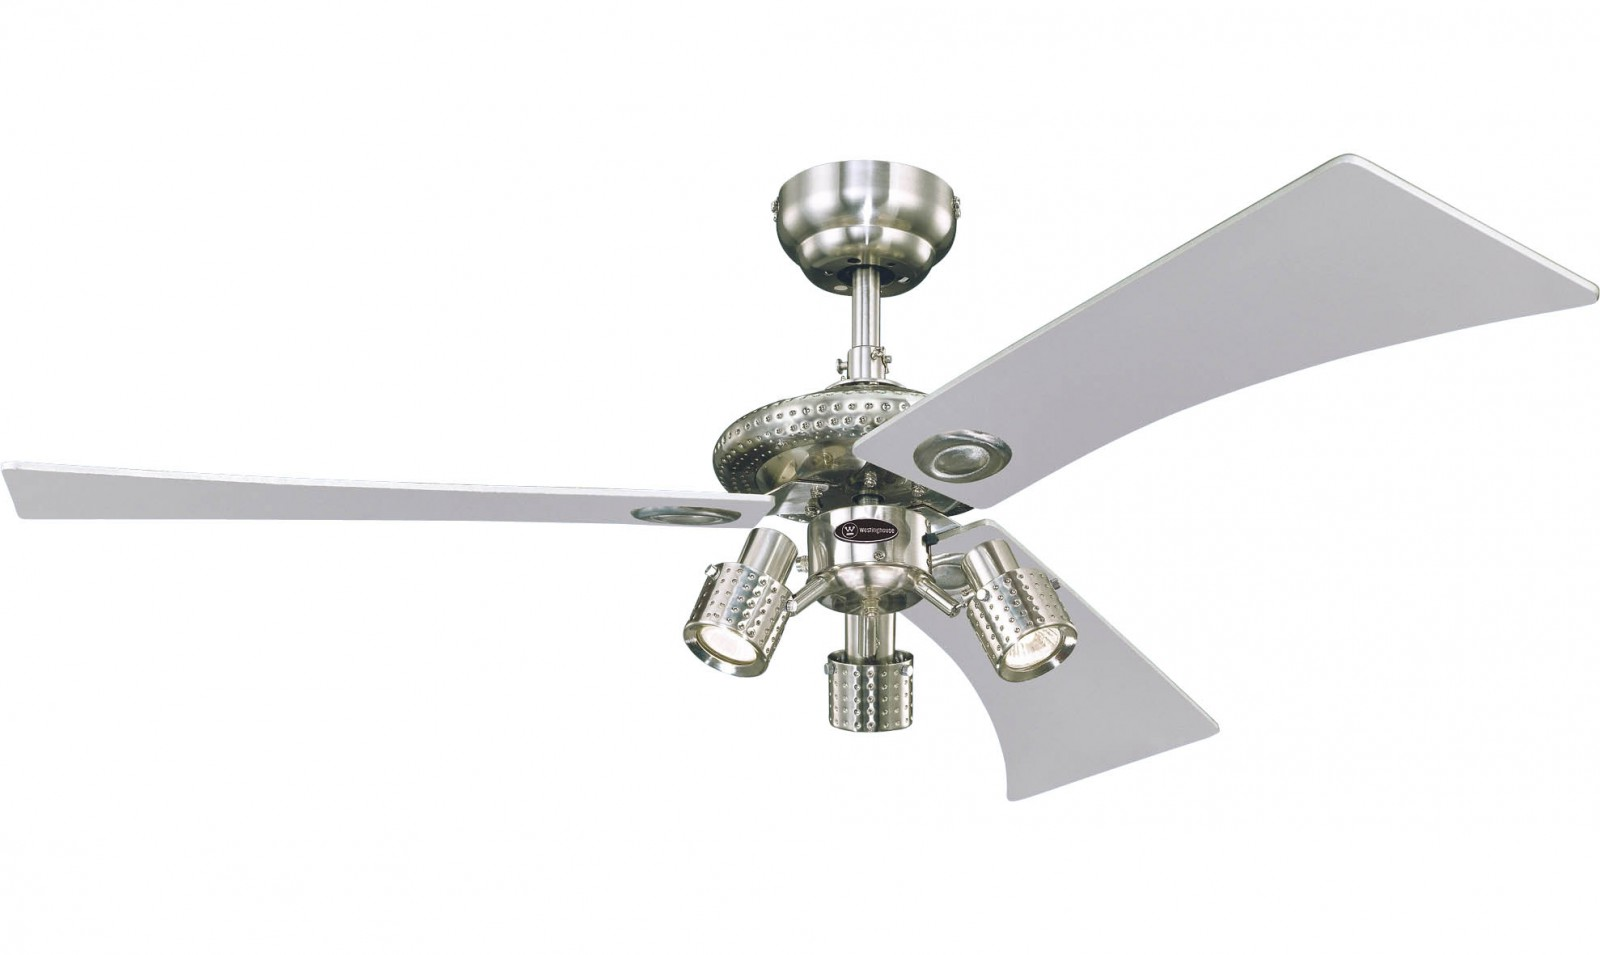 westinghouse ceiling fan audubon nickel 122 cm 48 with. Black Bedroom Furniture Sets. Home Design Ideas